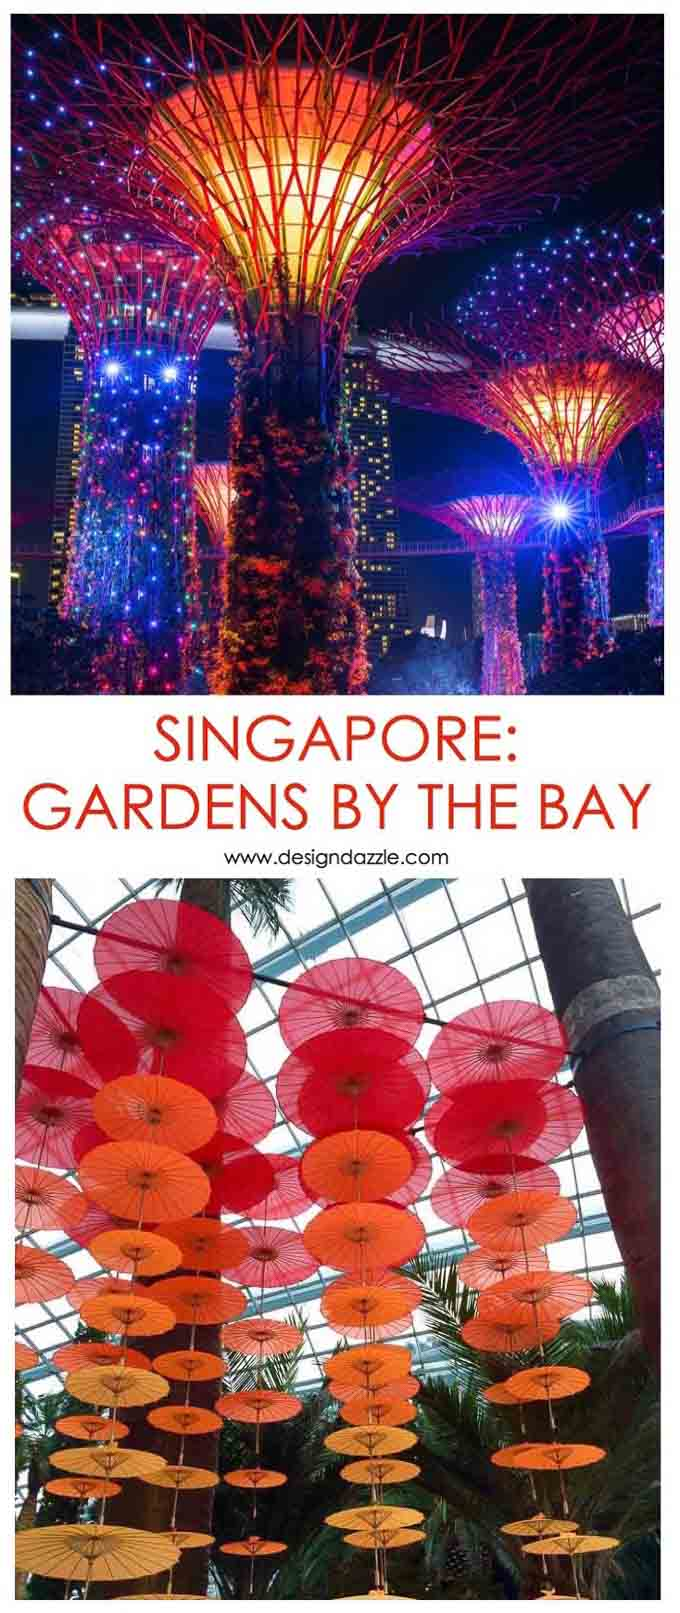 One of my all-time favorite parts of our trip to Singapore was visiting the Gardens by the Bay attractions. They are breathtakingly beautiful, a must-do! | Design Dazzle